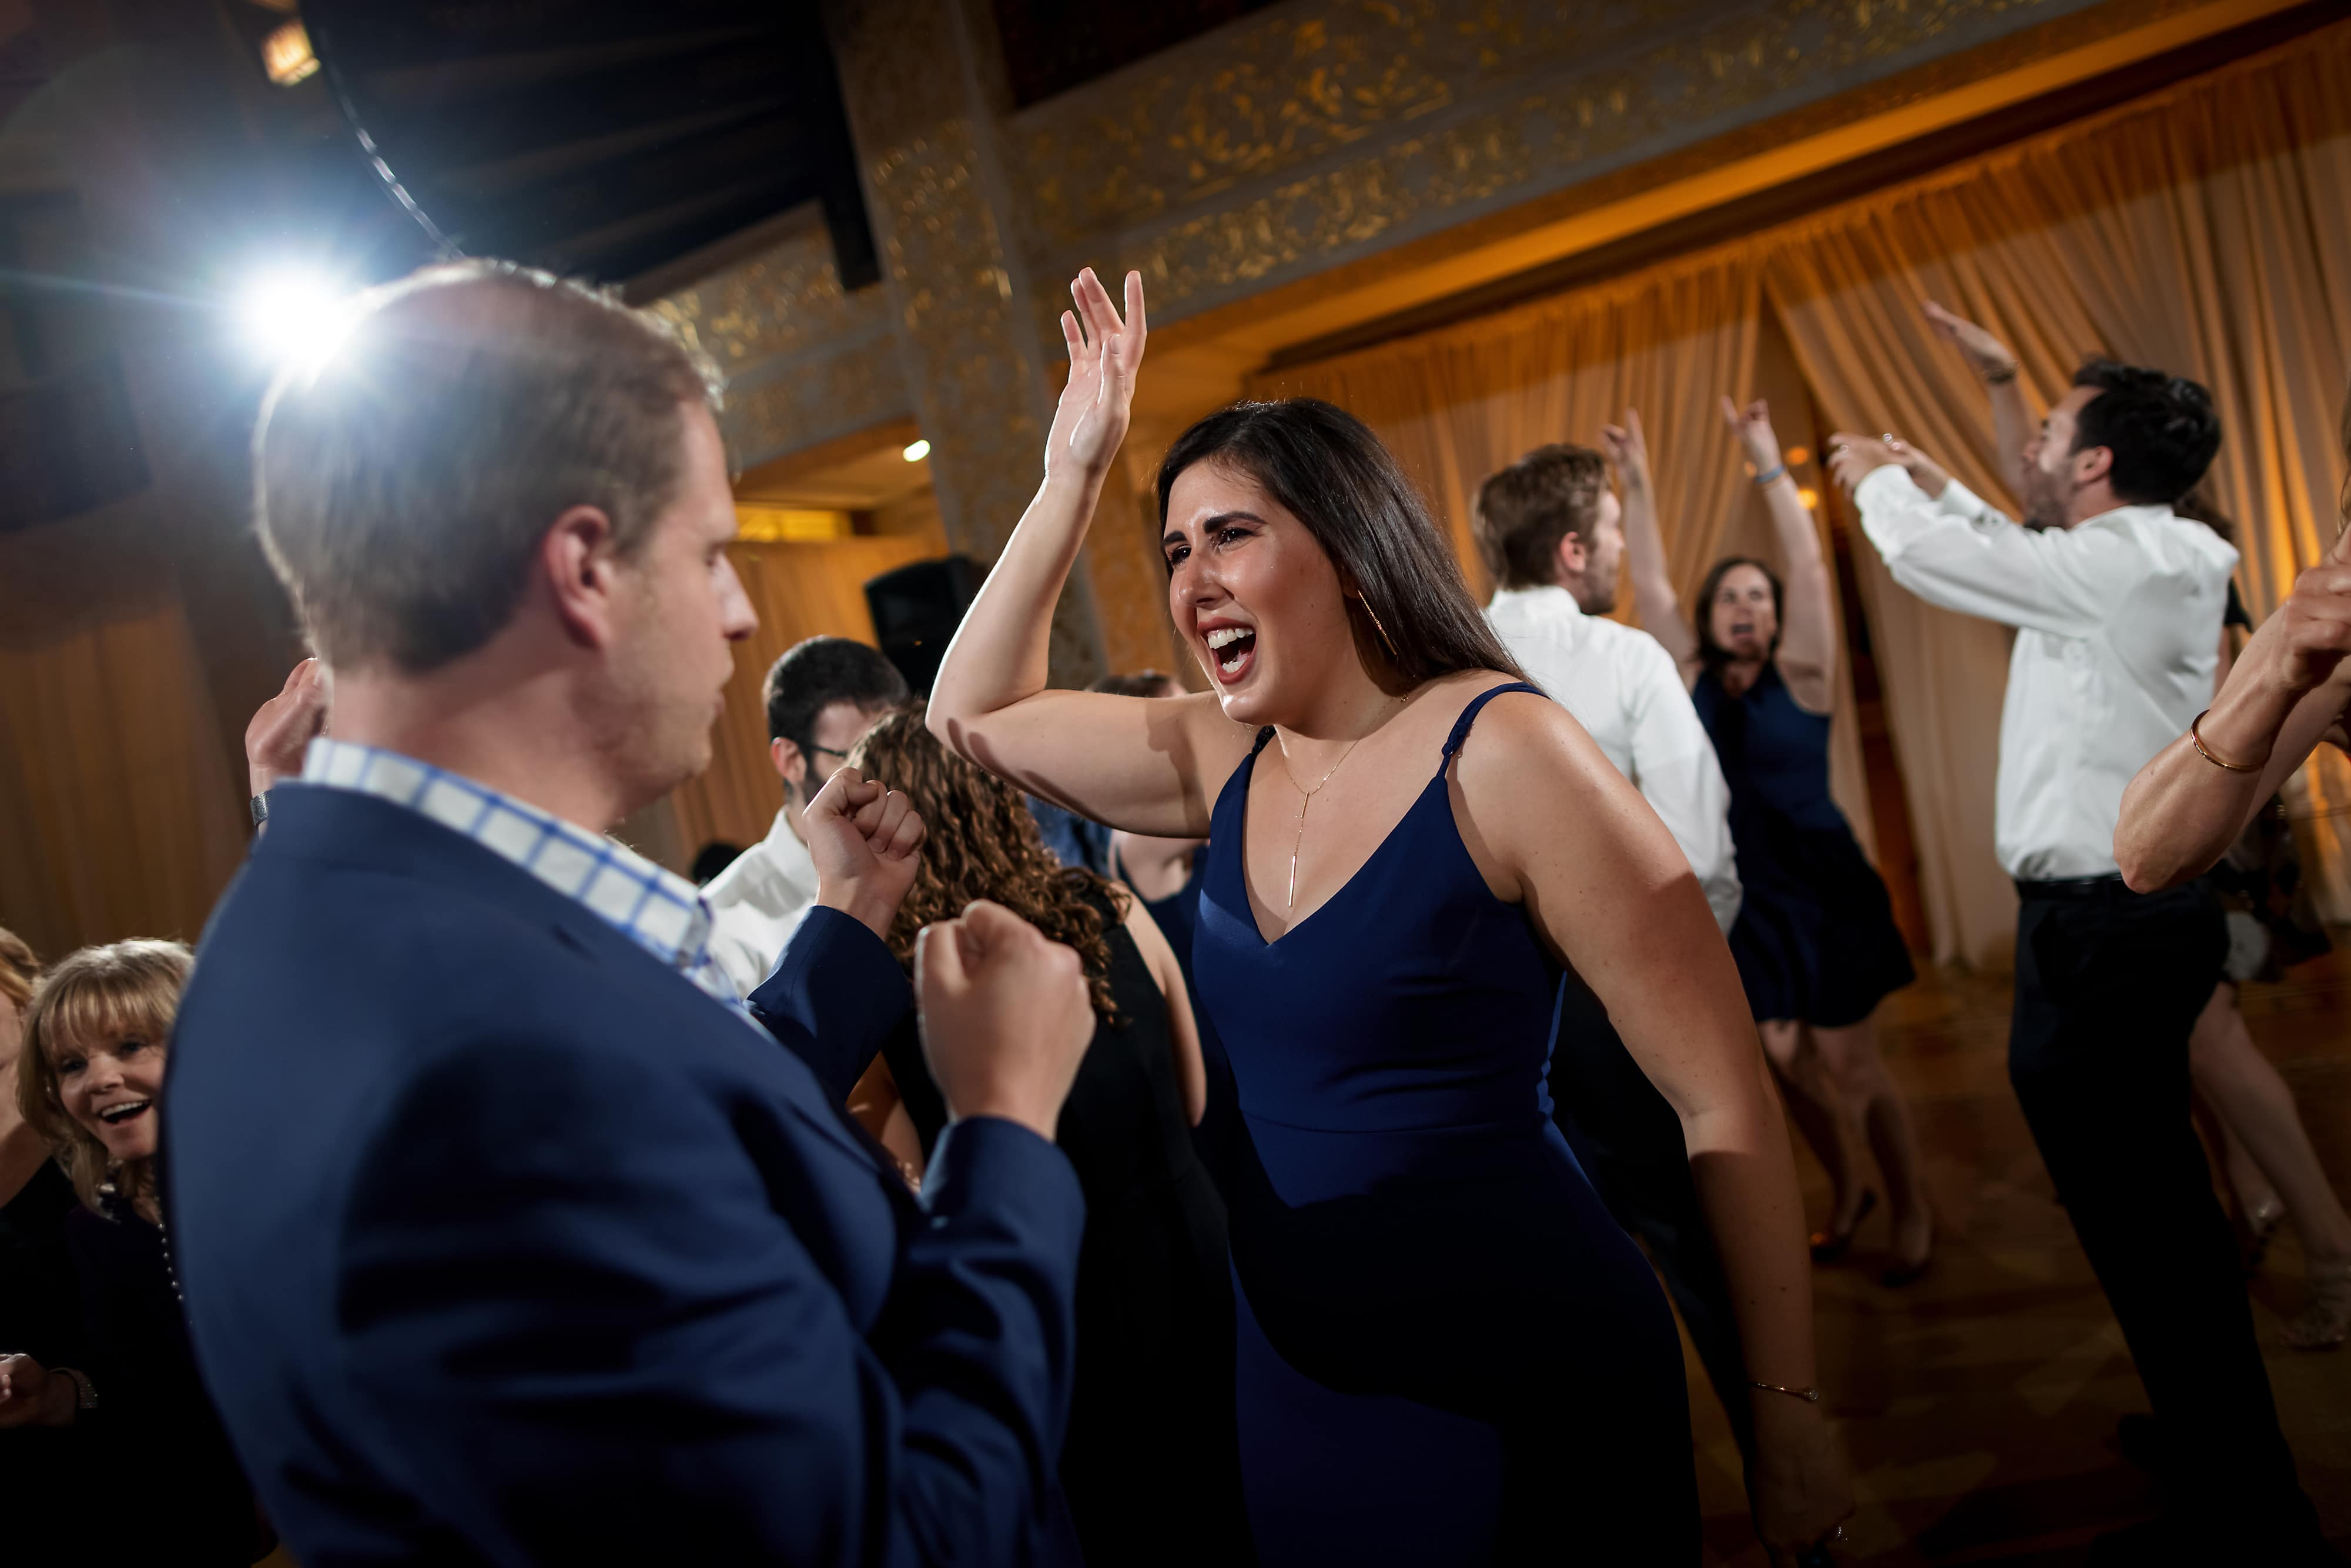 Wedding guests dance during reception at the Rookery Building in Chicago